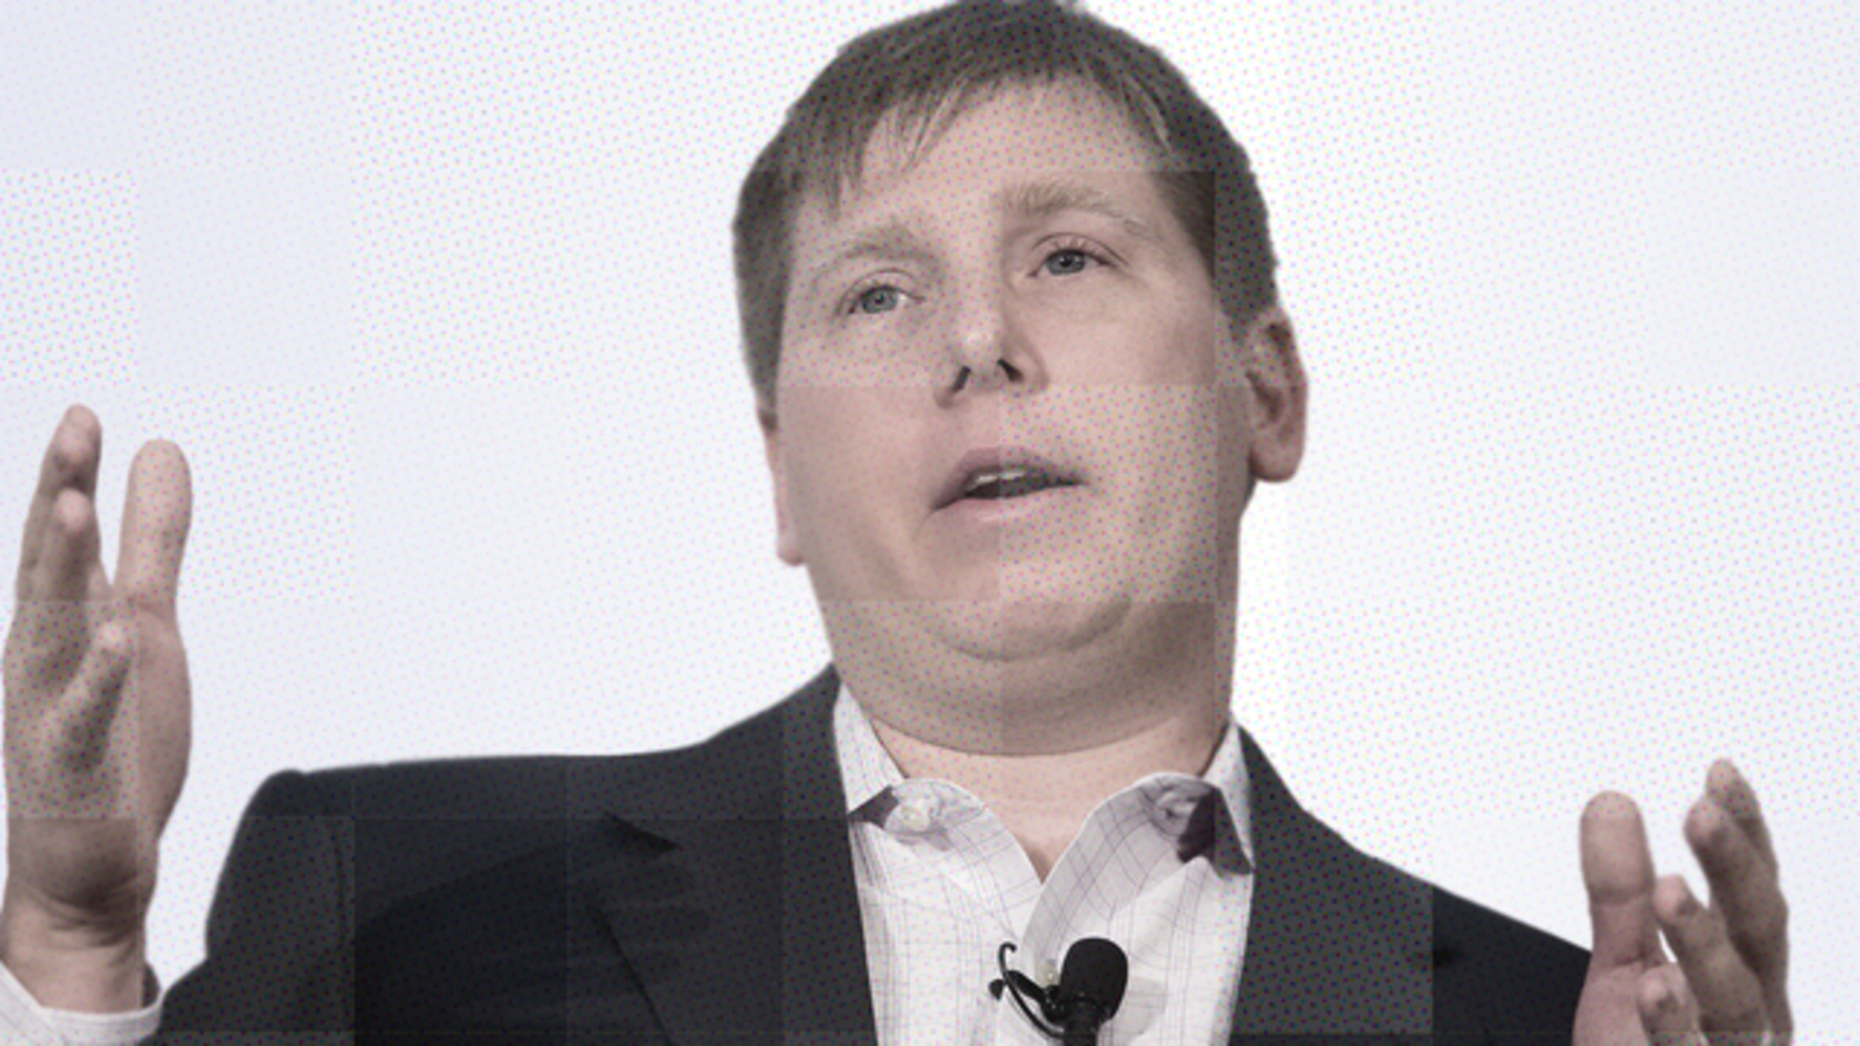 Barry Silbert, founder and CEO, Digital Currency Group